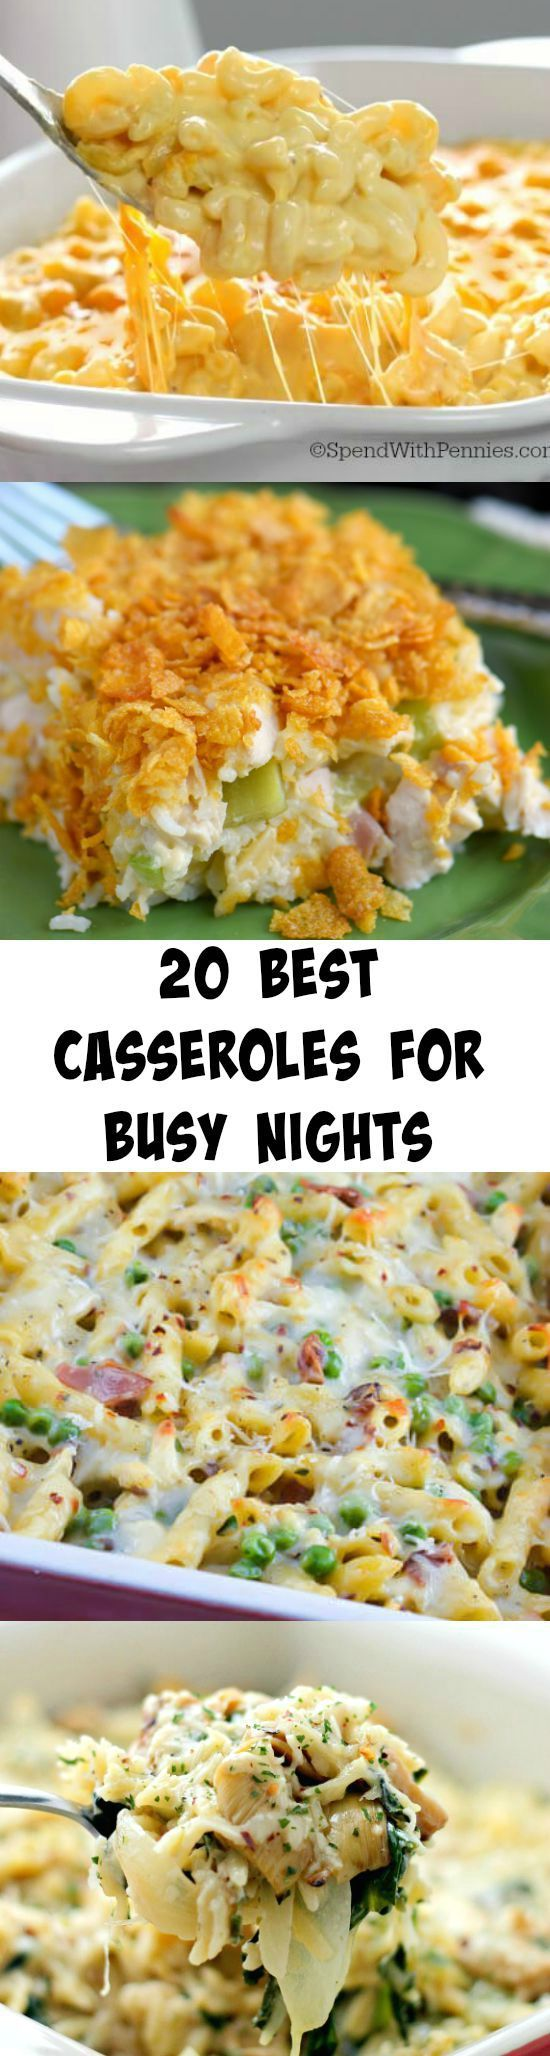 ladies fashion jewellery Everyone needs these recipes    of the BEST Casseroles for Busy Nights